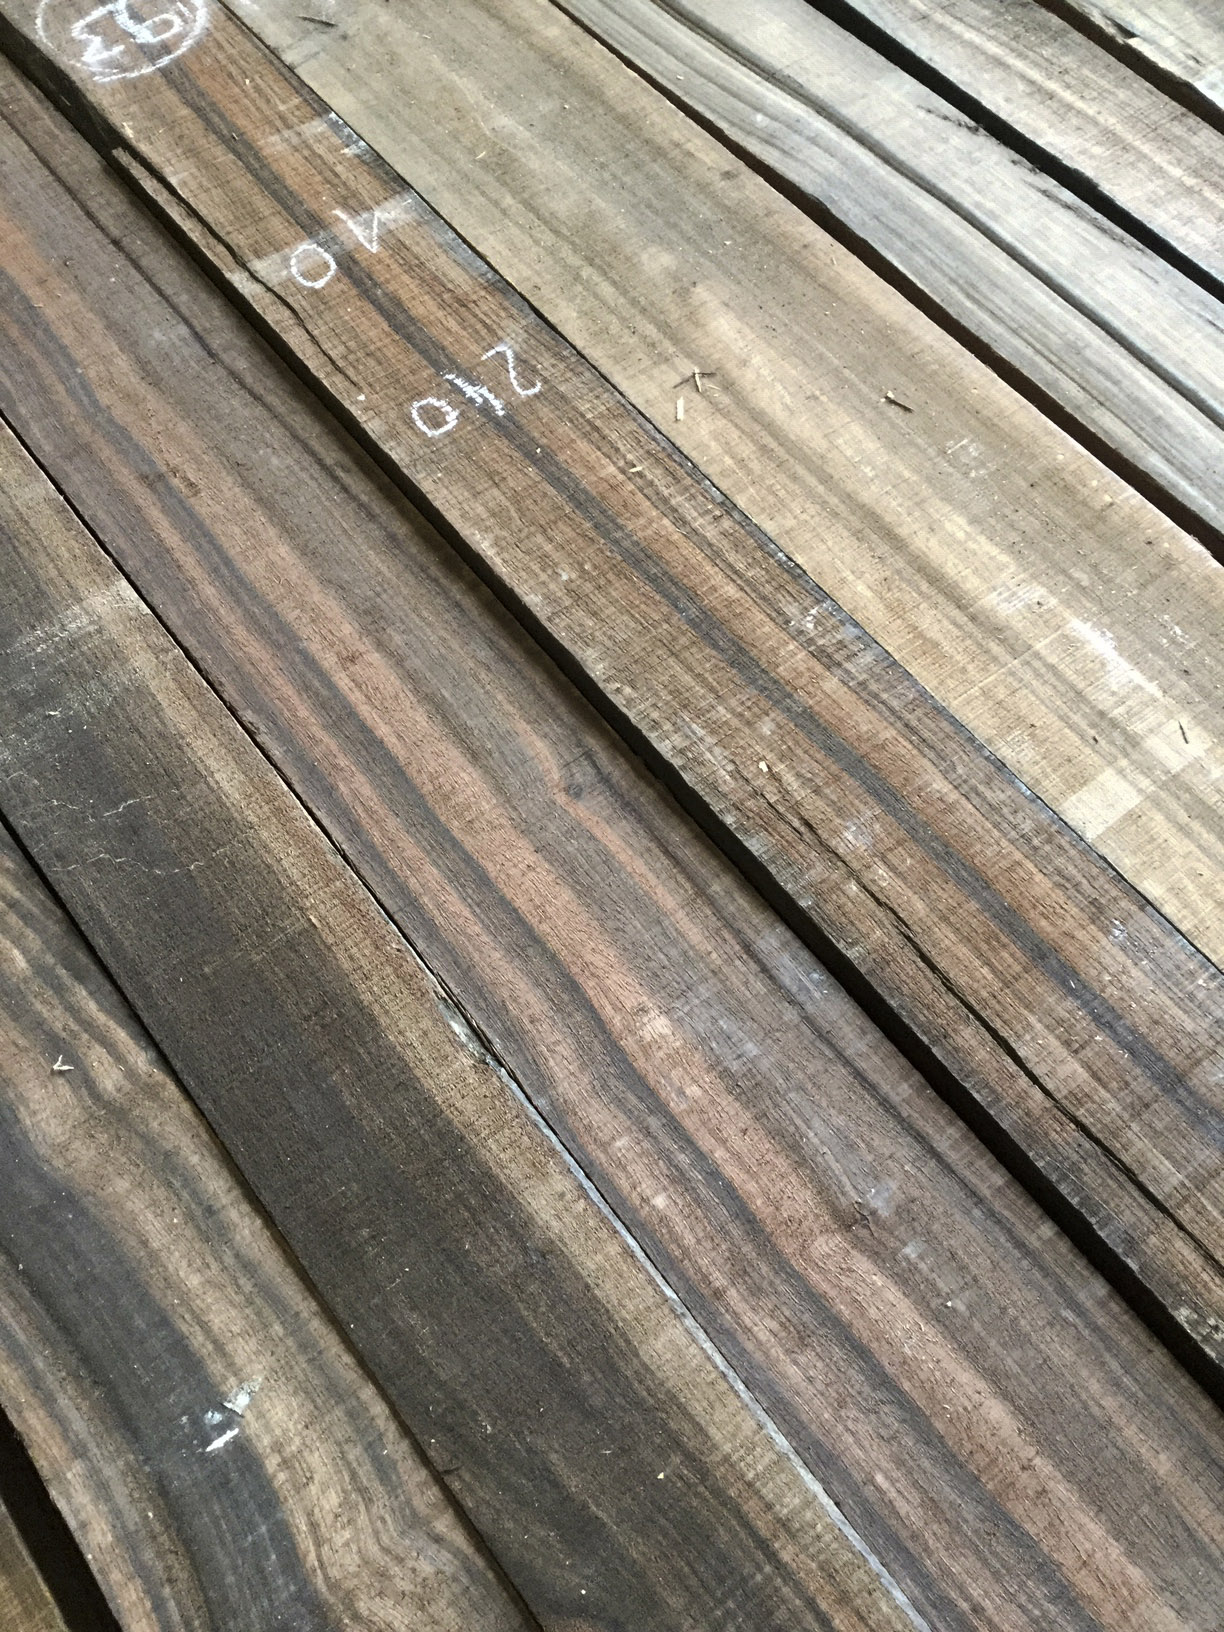 macassar ebony at Hearne Hardwoods Inc.